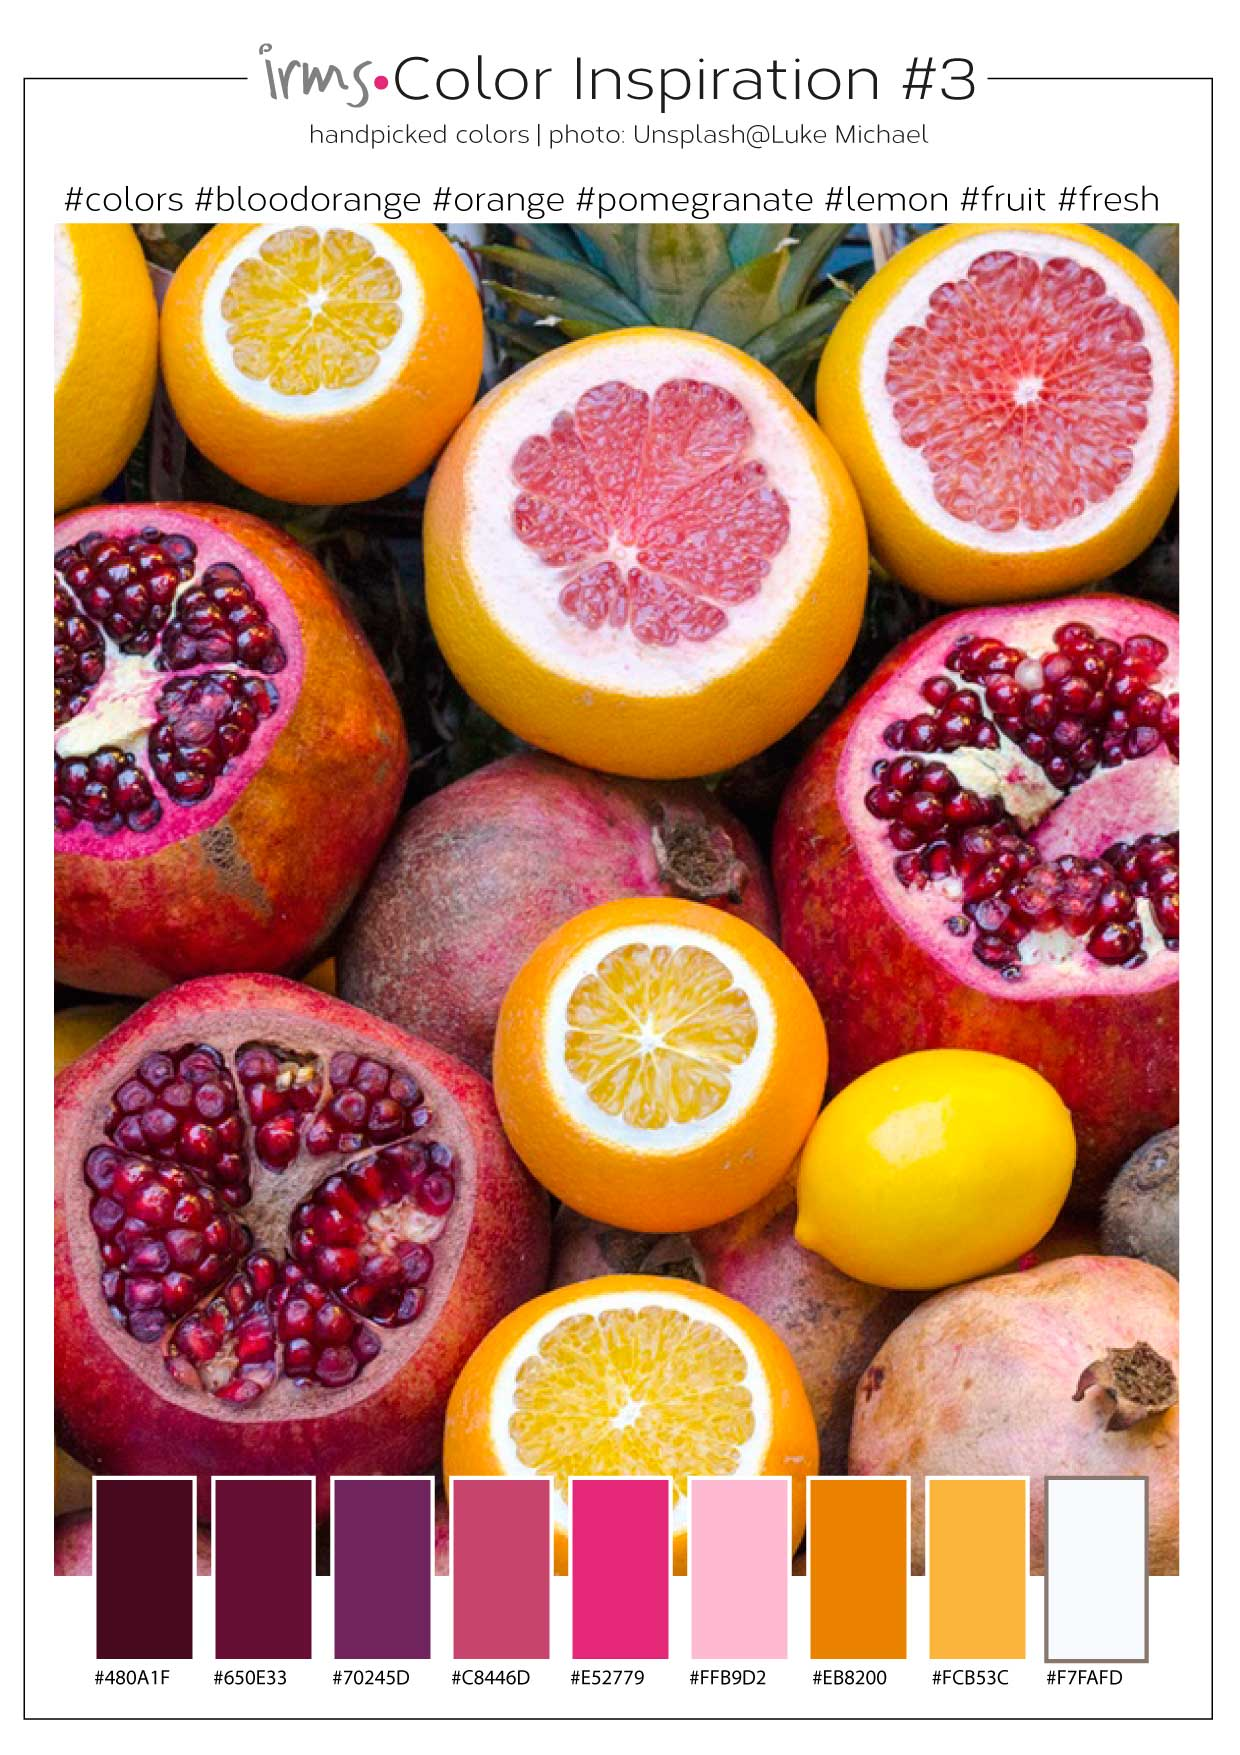 colors-orange-pomegranate-fruit